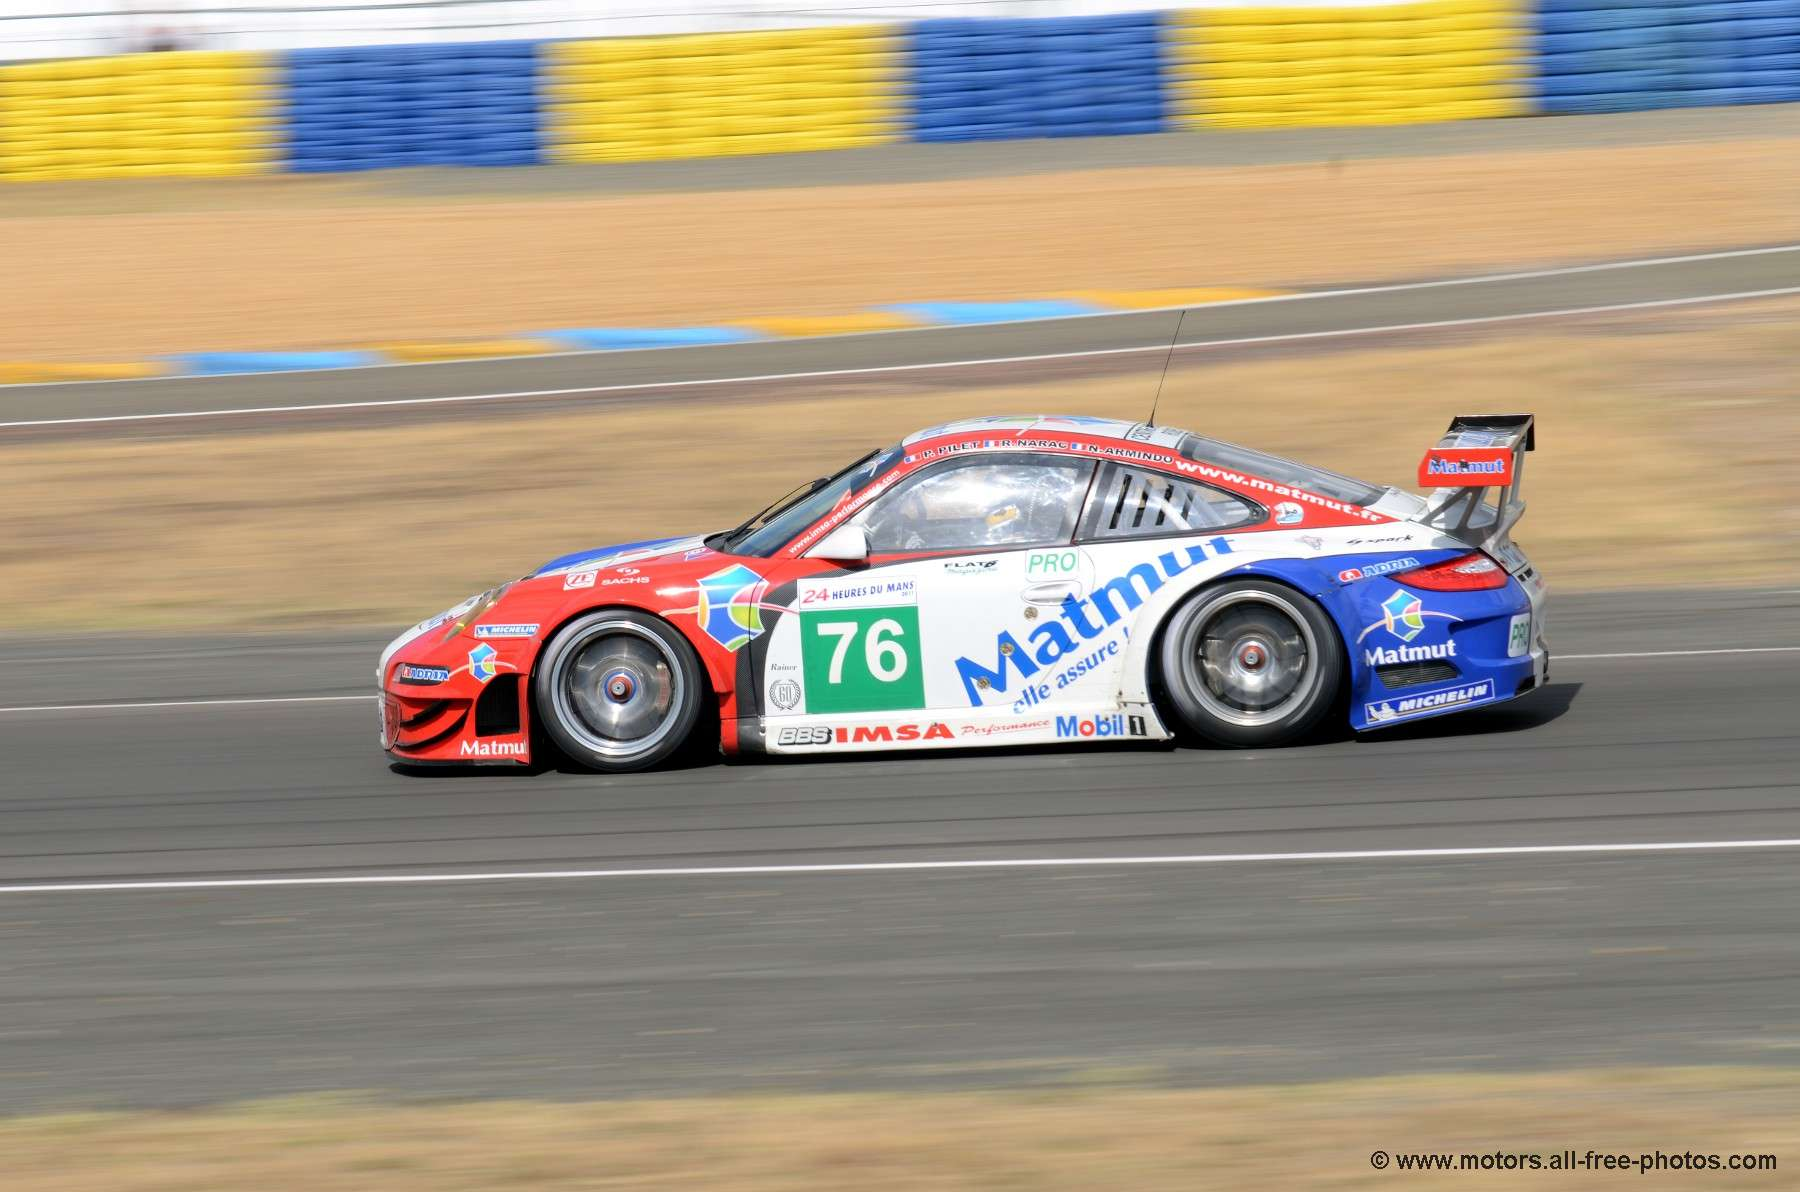 Porsche 997 GT3 RSR - Team IMSA Performance Matmut